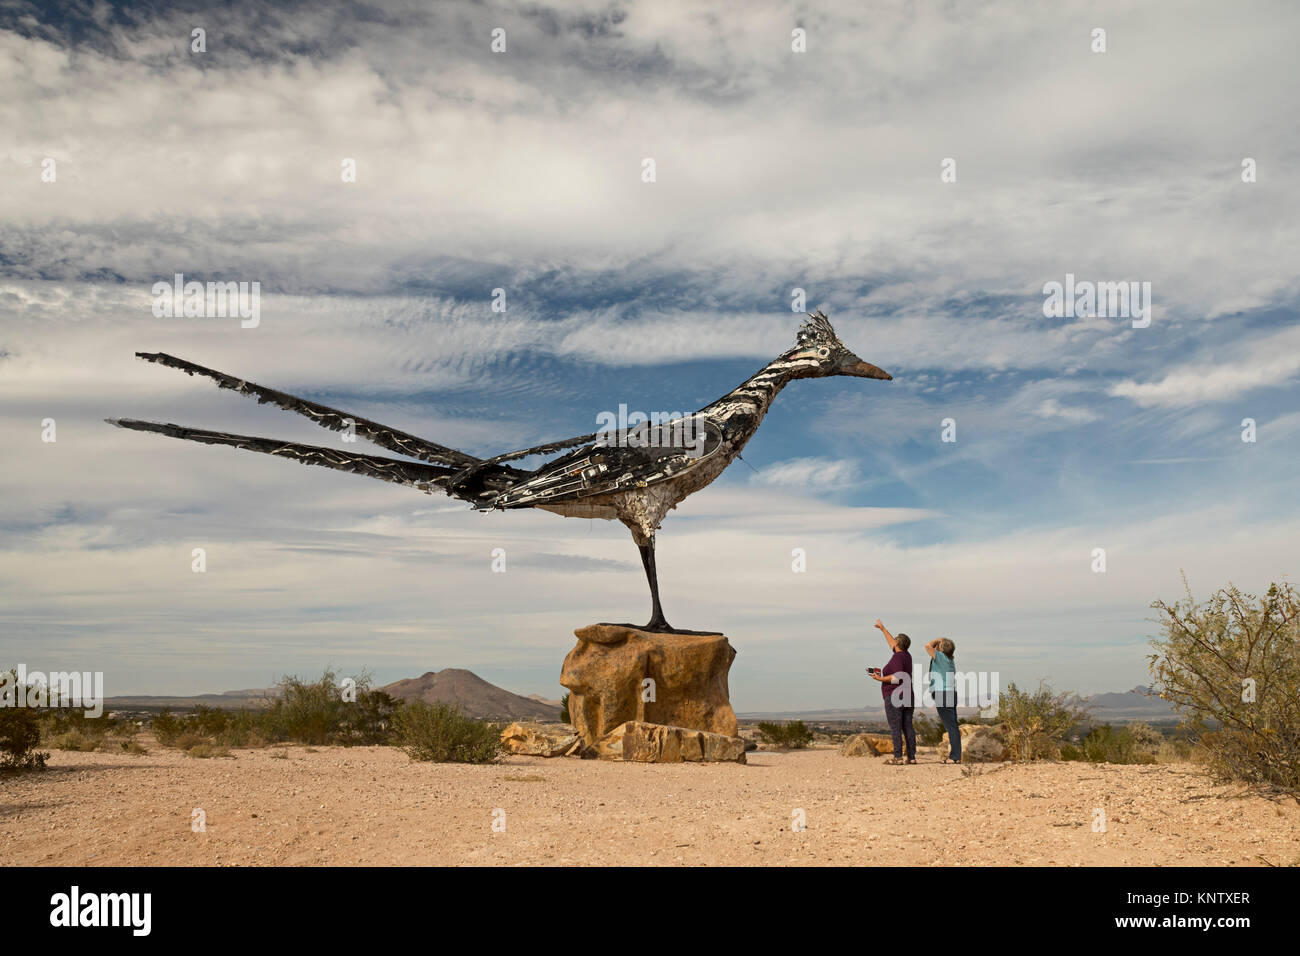 Las Cruces, New Mexico - The Las Cruces Roadrunner, a 20-foot tall sculpture made from recycled materials by artist - Stock Image